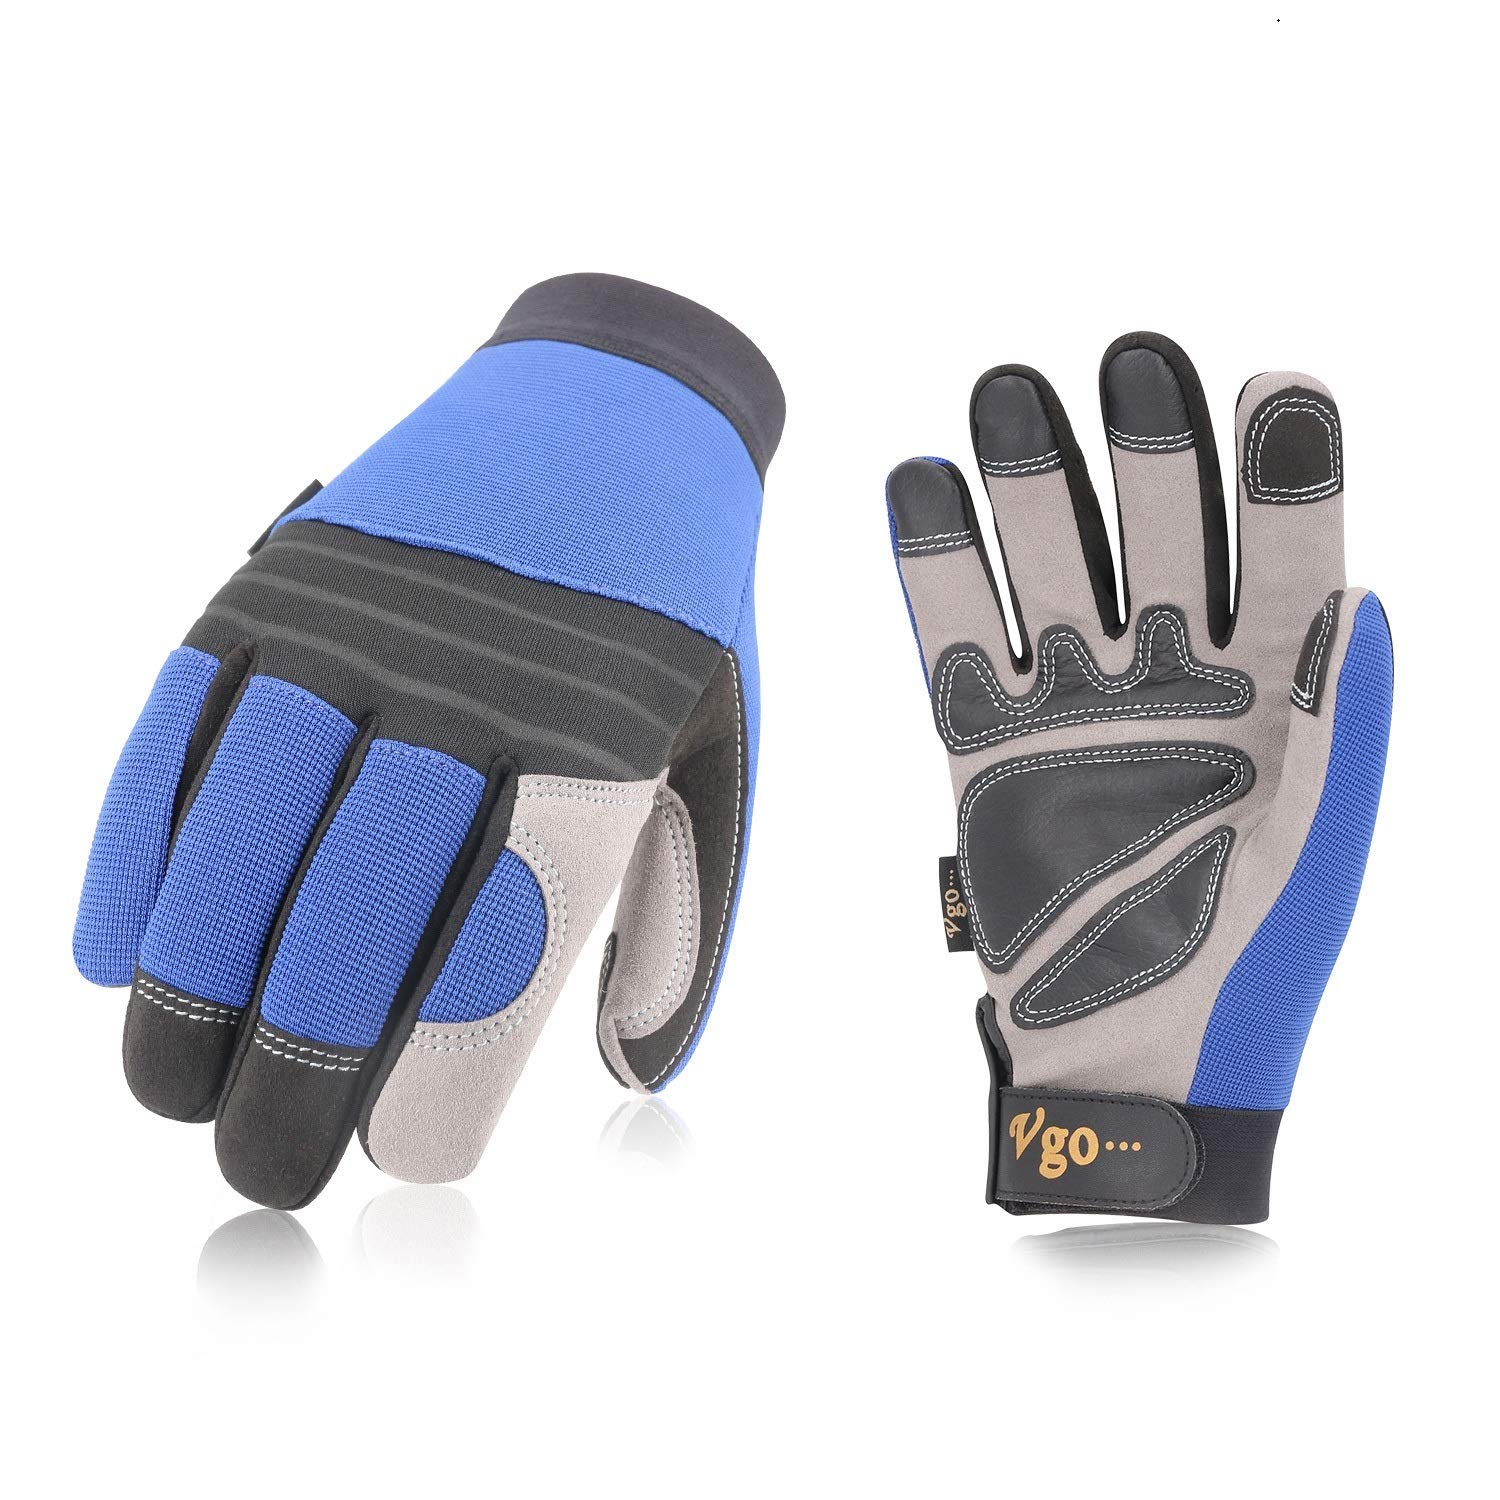 Vgo Glove Synthetic Leather Multifunctional Work Gloves Driver, Mechanician, Carpenter, Electrician, Farmer (1 Pair, Size 9/L, Blue, SL7621) Laborsing Safety Products Inc.